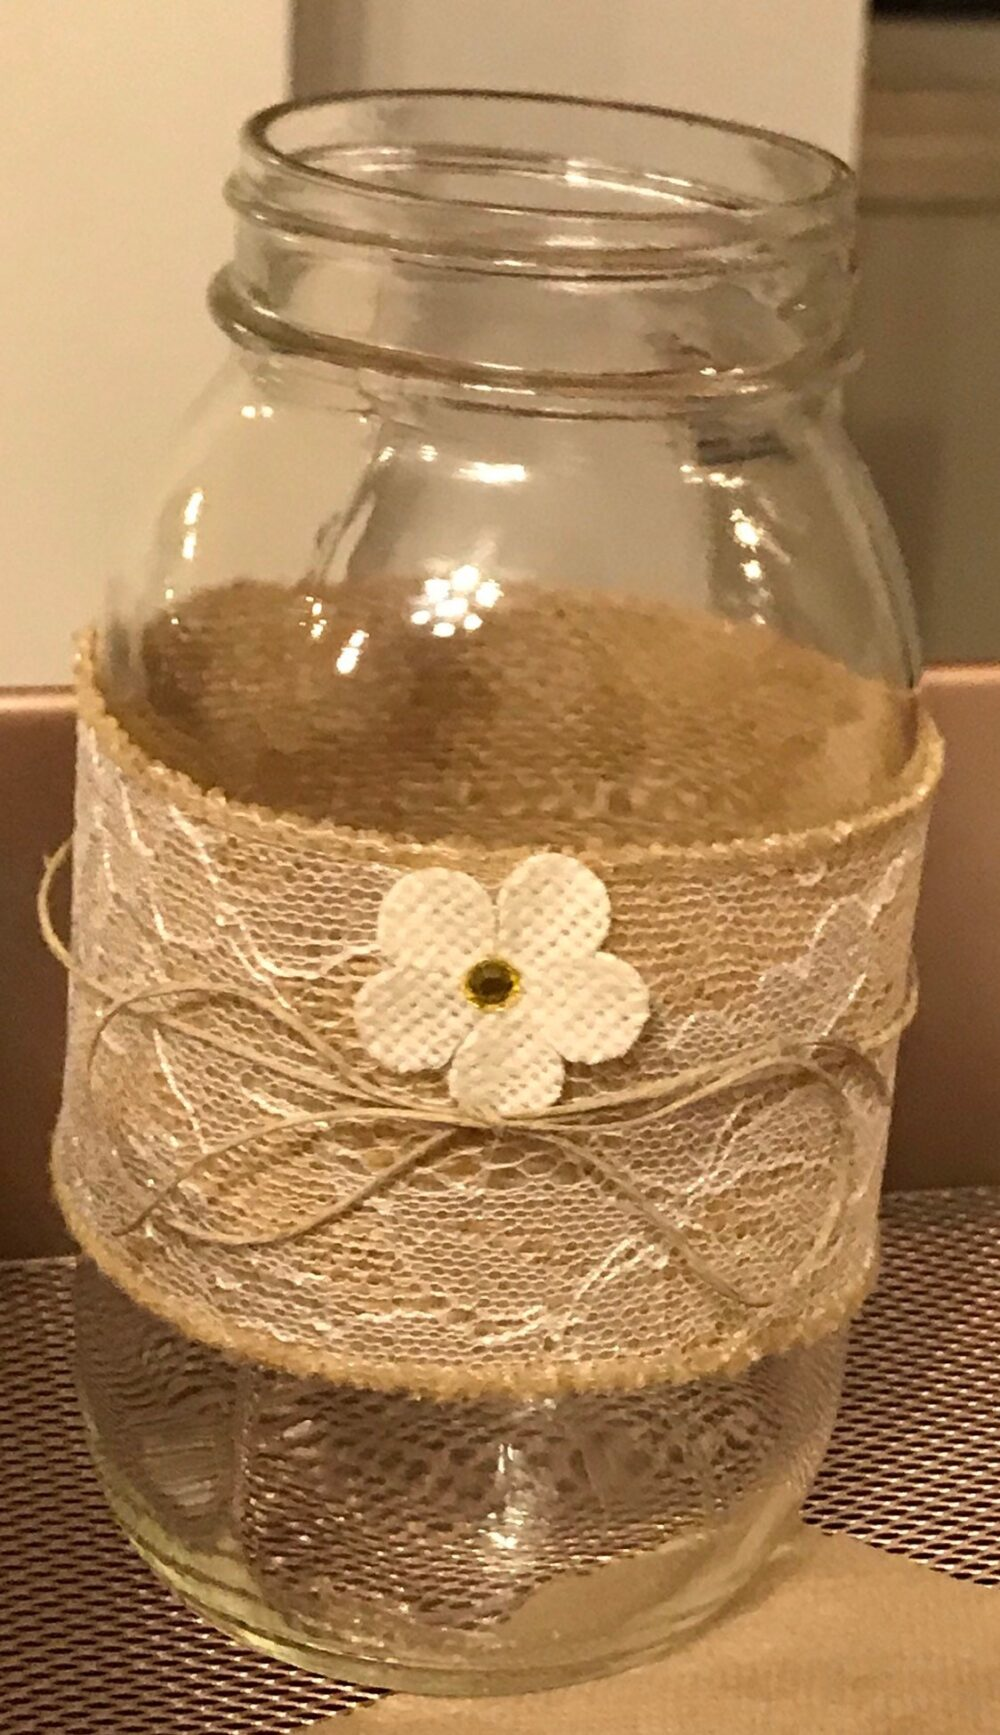 Centerpieces, Set Of 6 Rustic, Vintage Mason Jars Decorated With A Charming, Rustic Burlap & Lace Ribbon, Twine String Fabric Flower